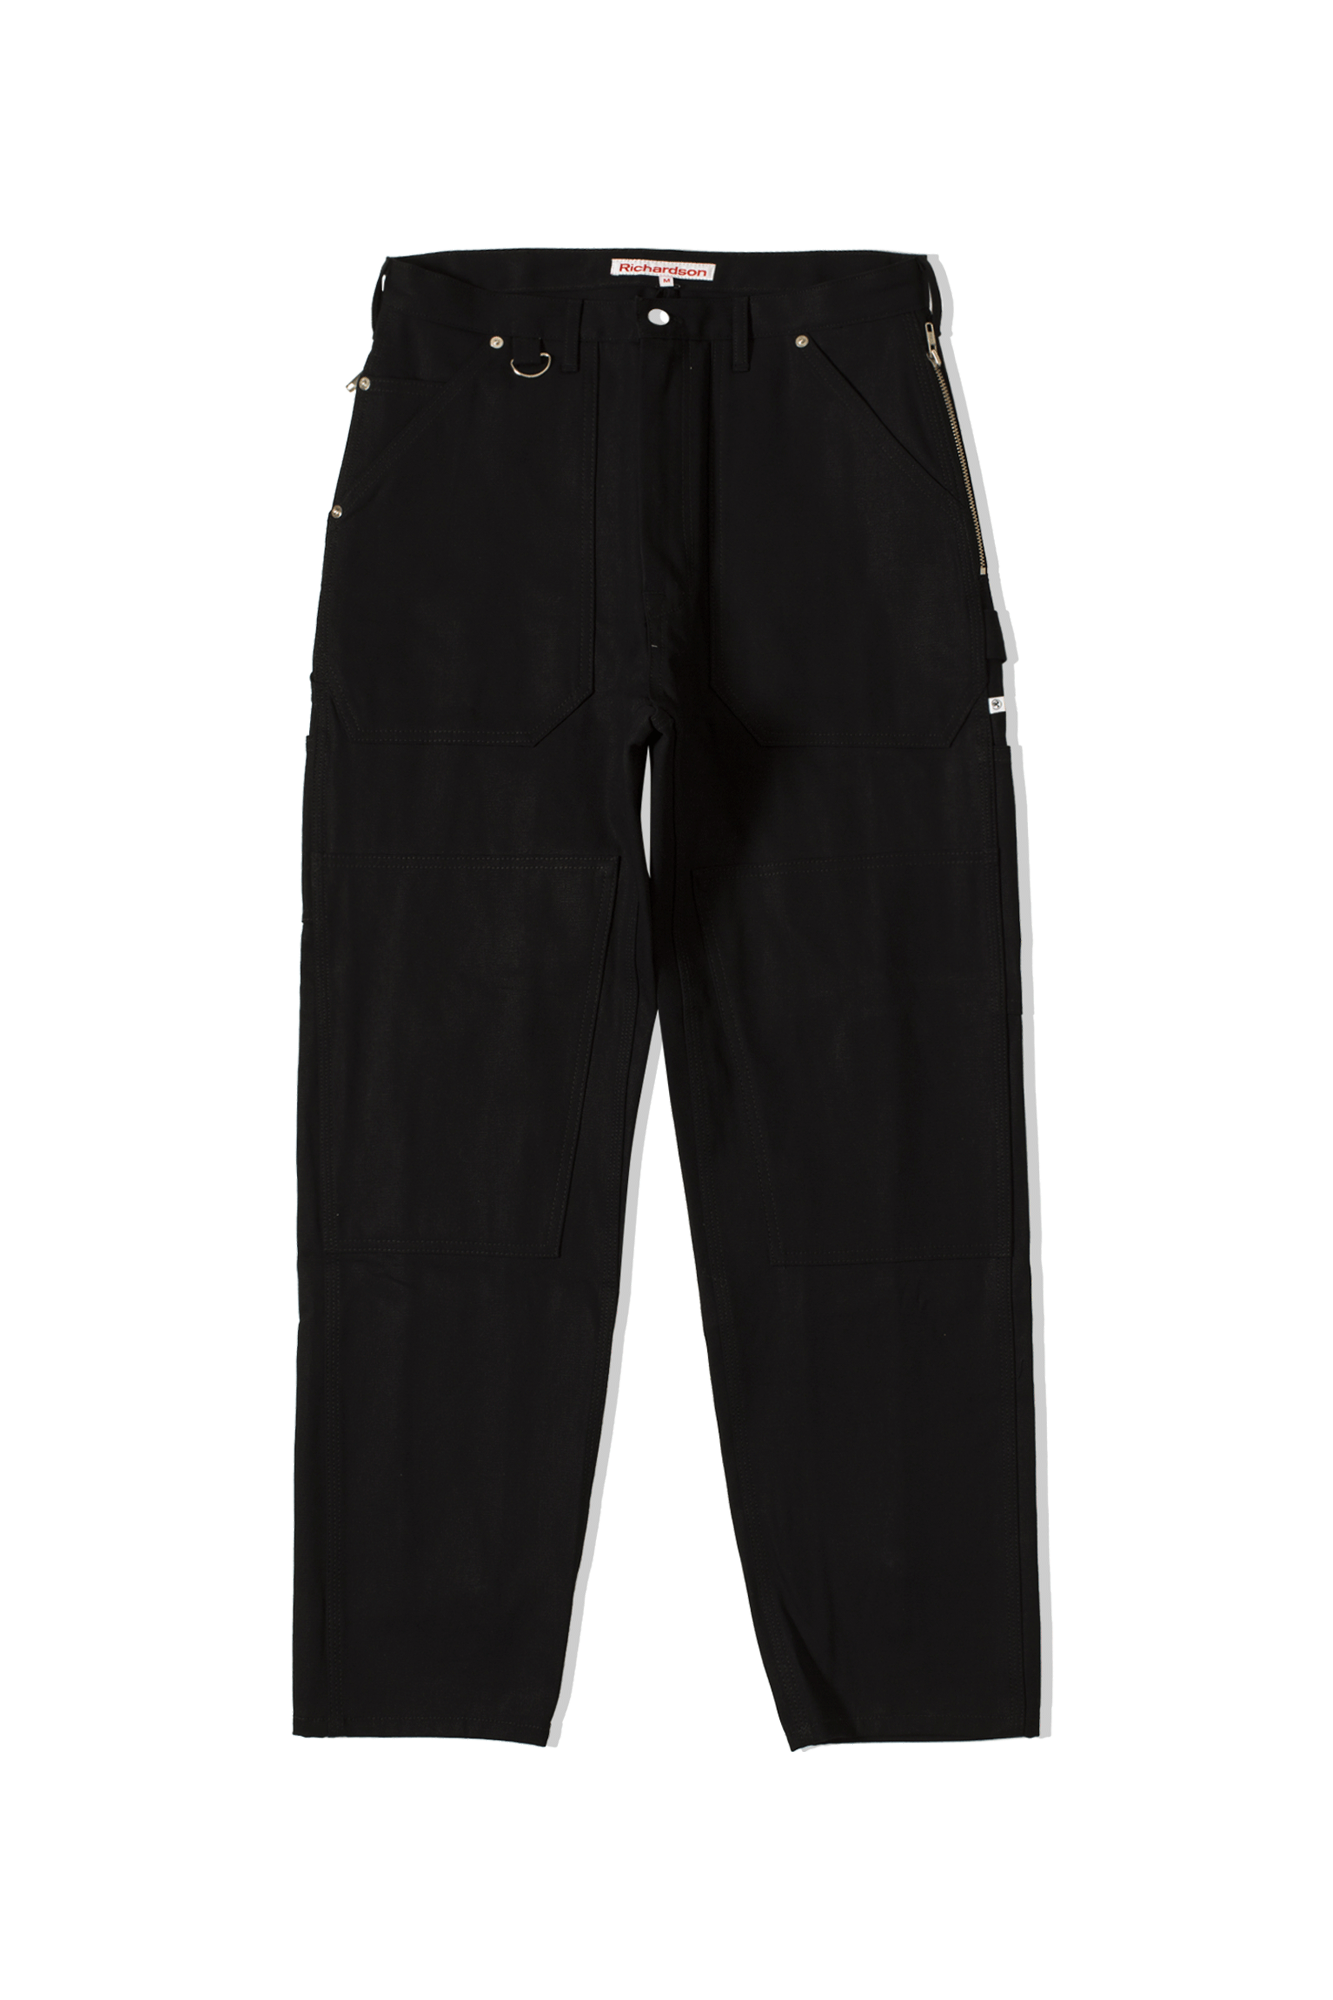 Richardson Mag Trousers Bondage Work Pants Black FW19023#000#BLK#S - One Block Down